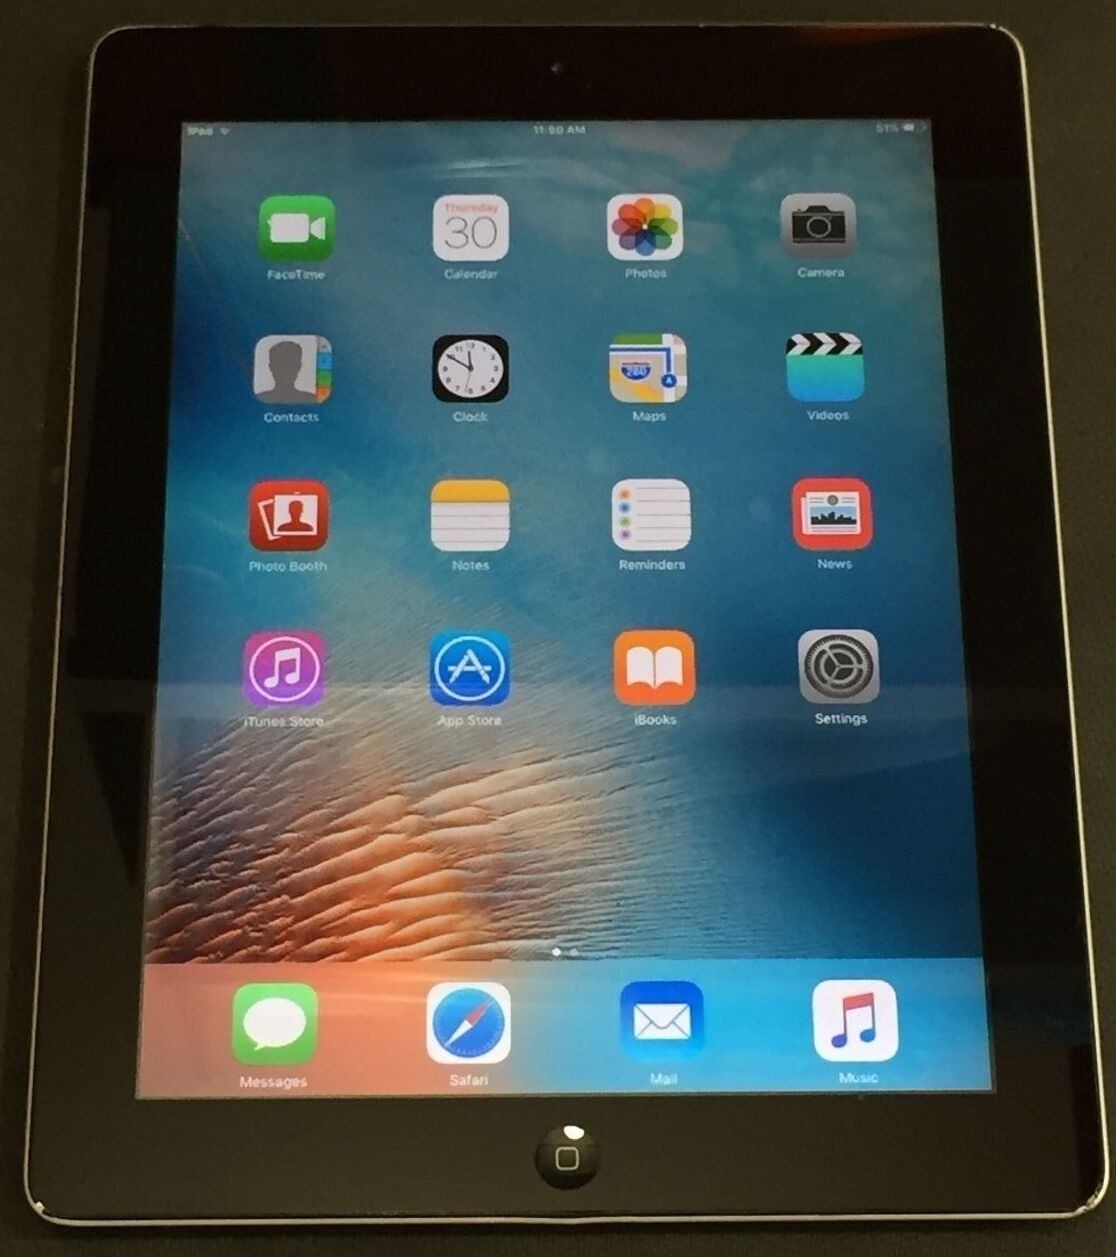 Apple iPad 2 16GB, Wi-Fi, 9.7in - Black 2nd Generation Tablet